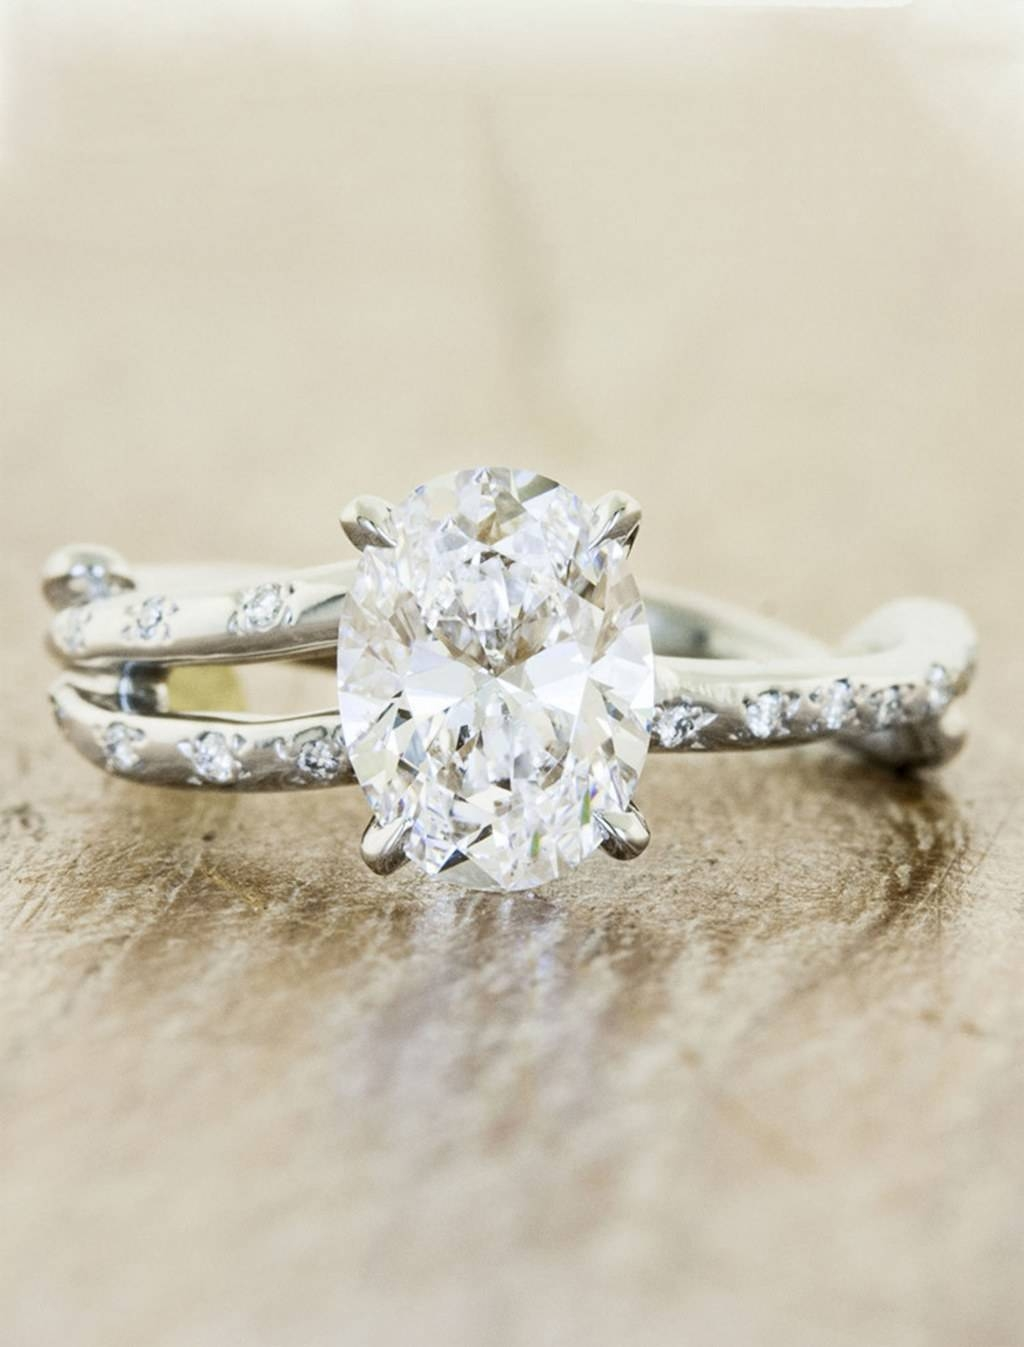 Unique Engagement Rings: Rustic Engagement Rings, Eco Friendly Throughout Rustic Engagement Rings (View 1 of 15)